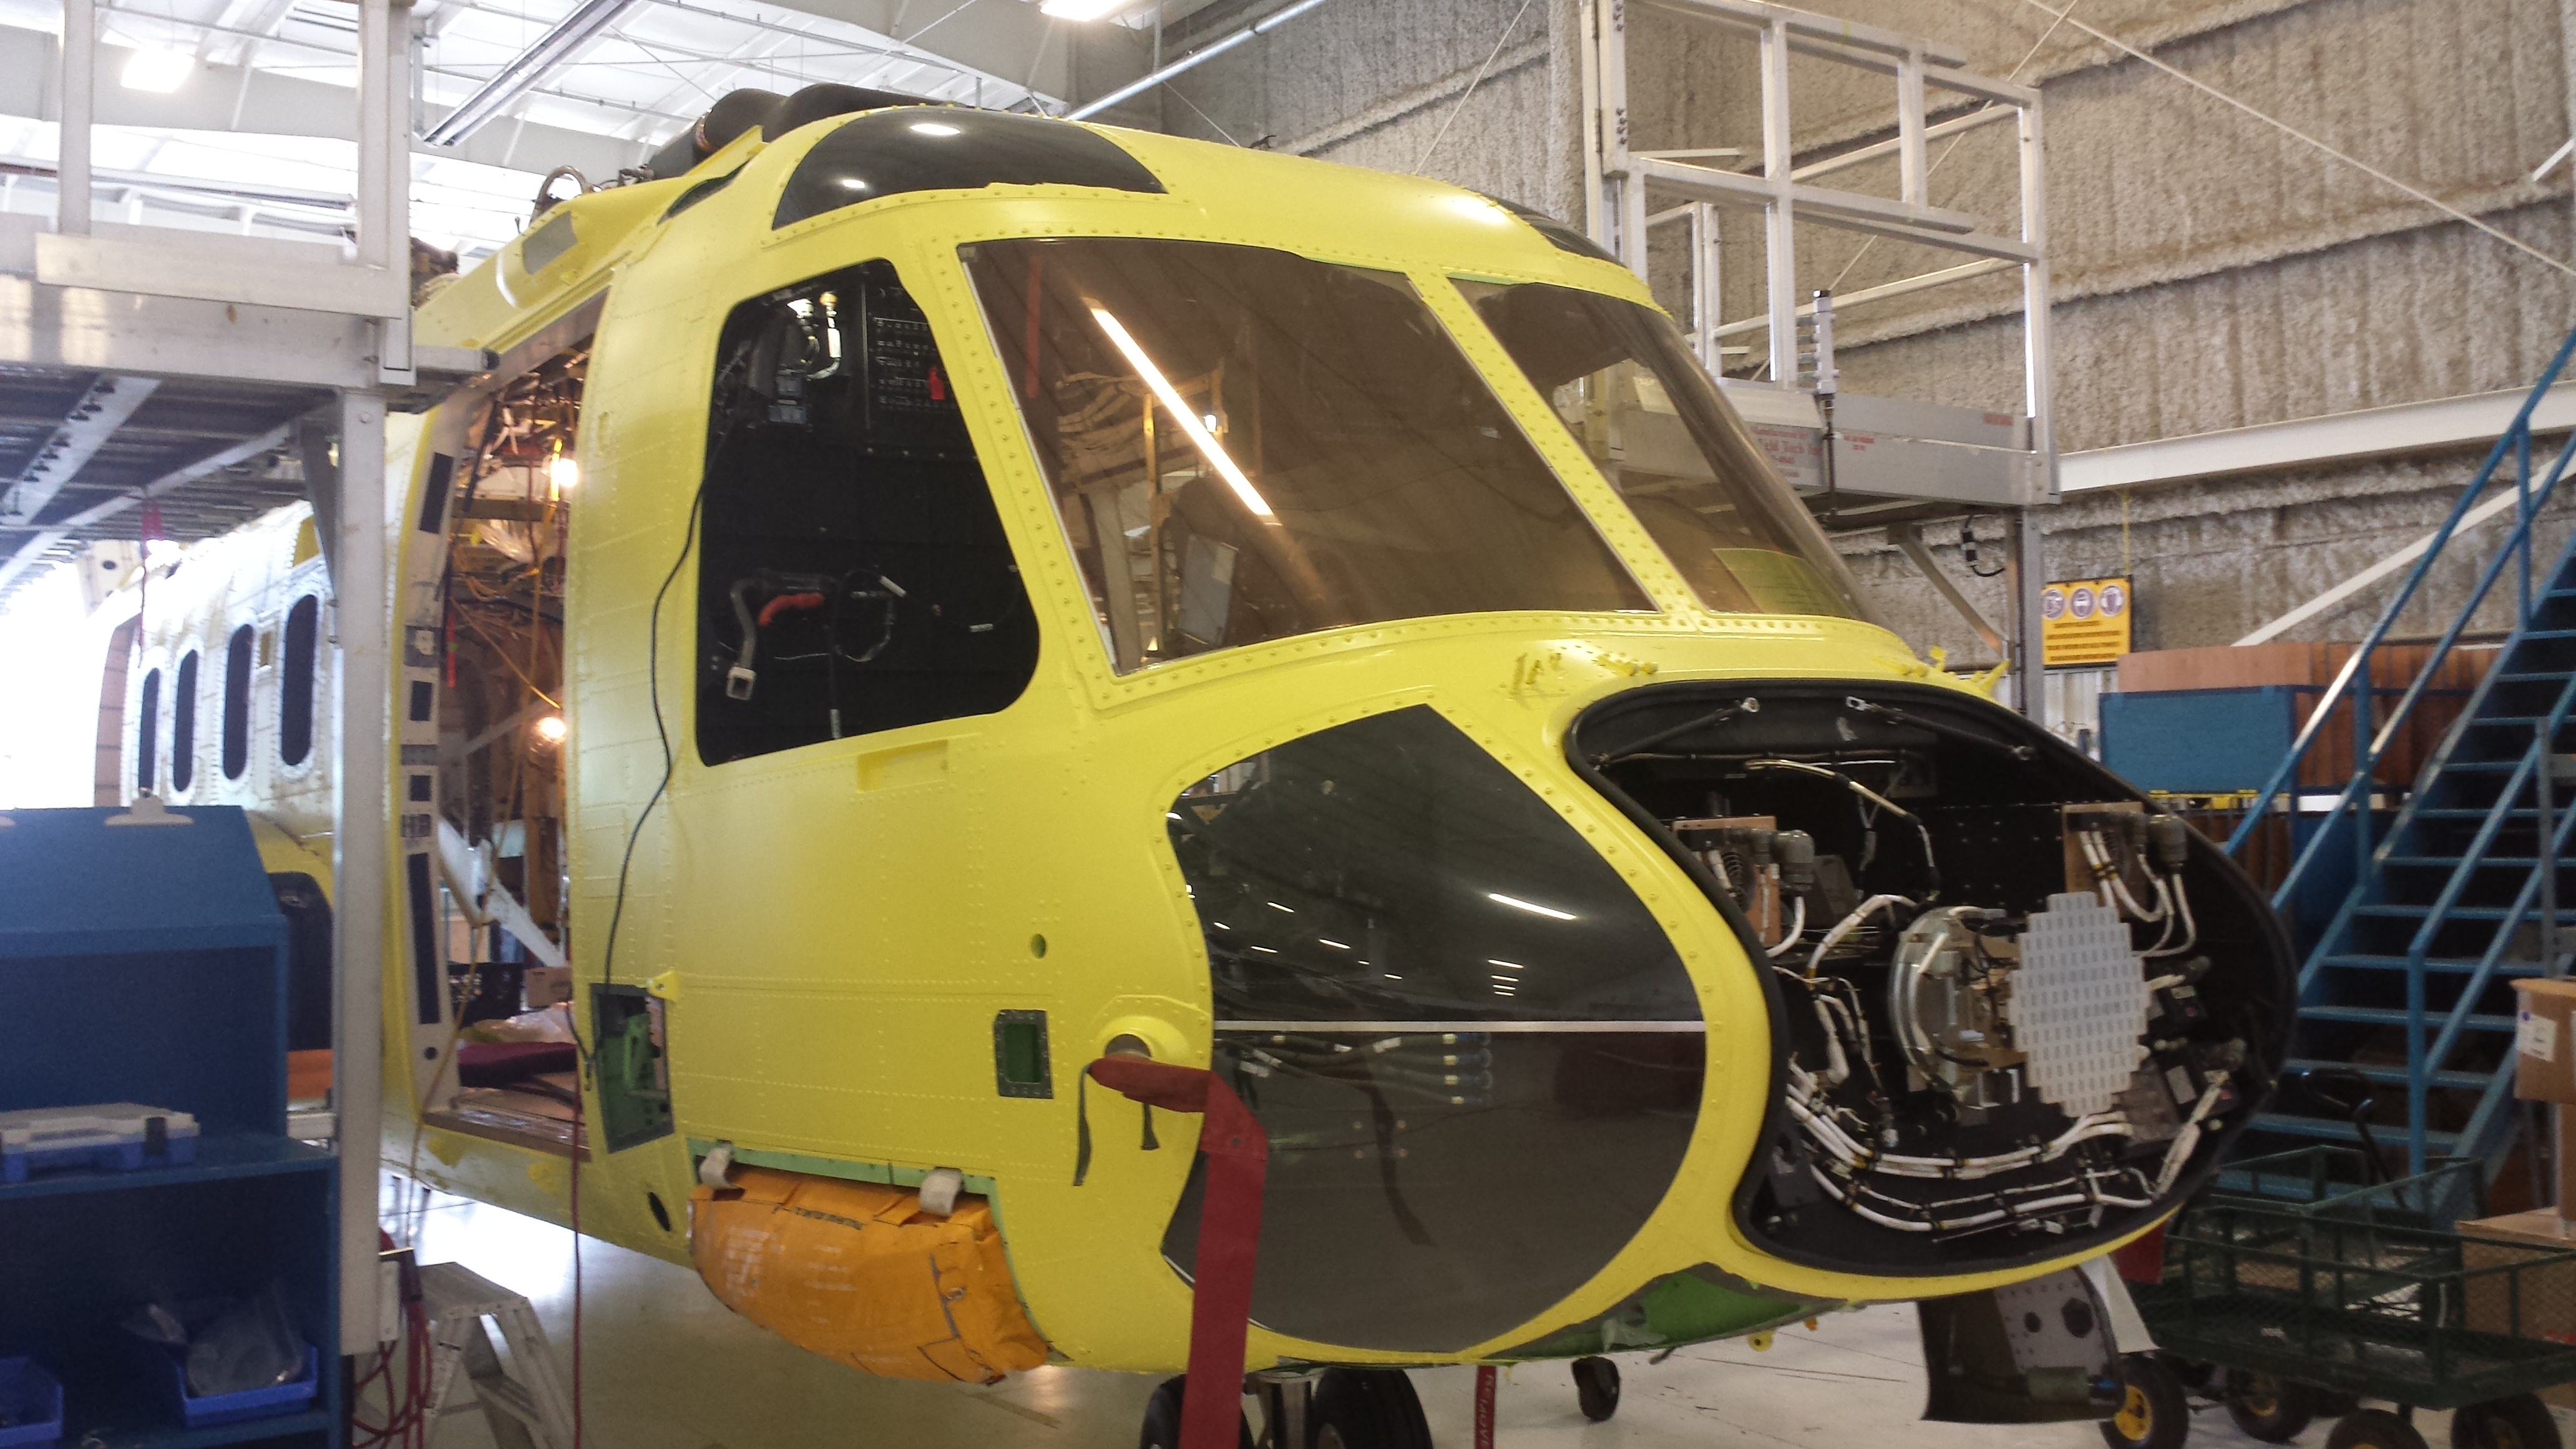 Helicopter maintenance & inspection services